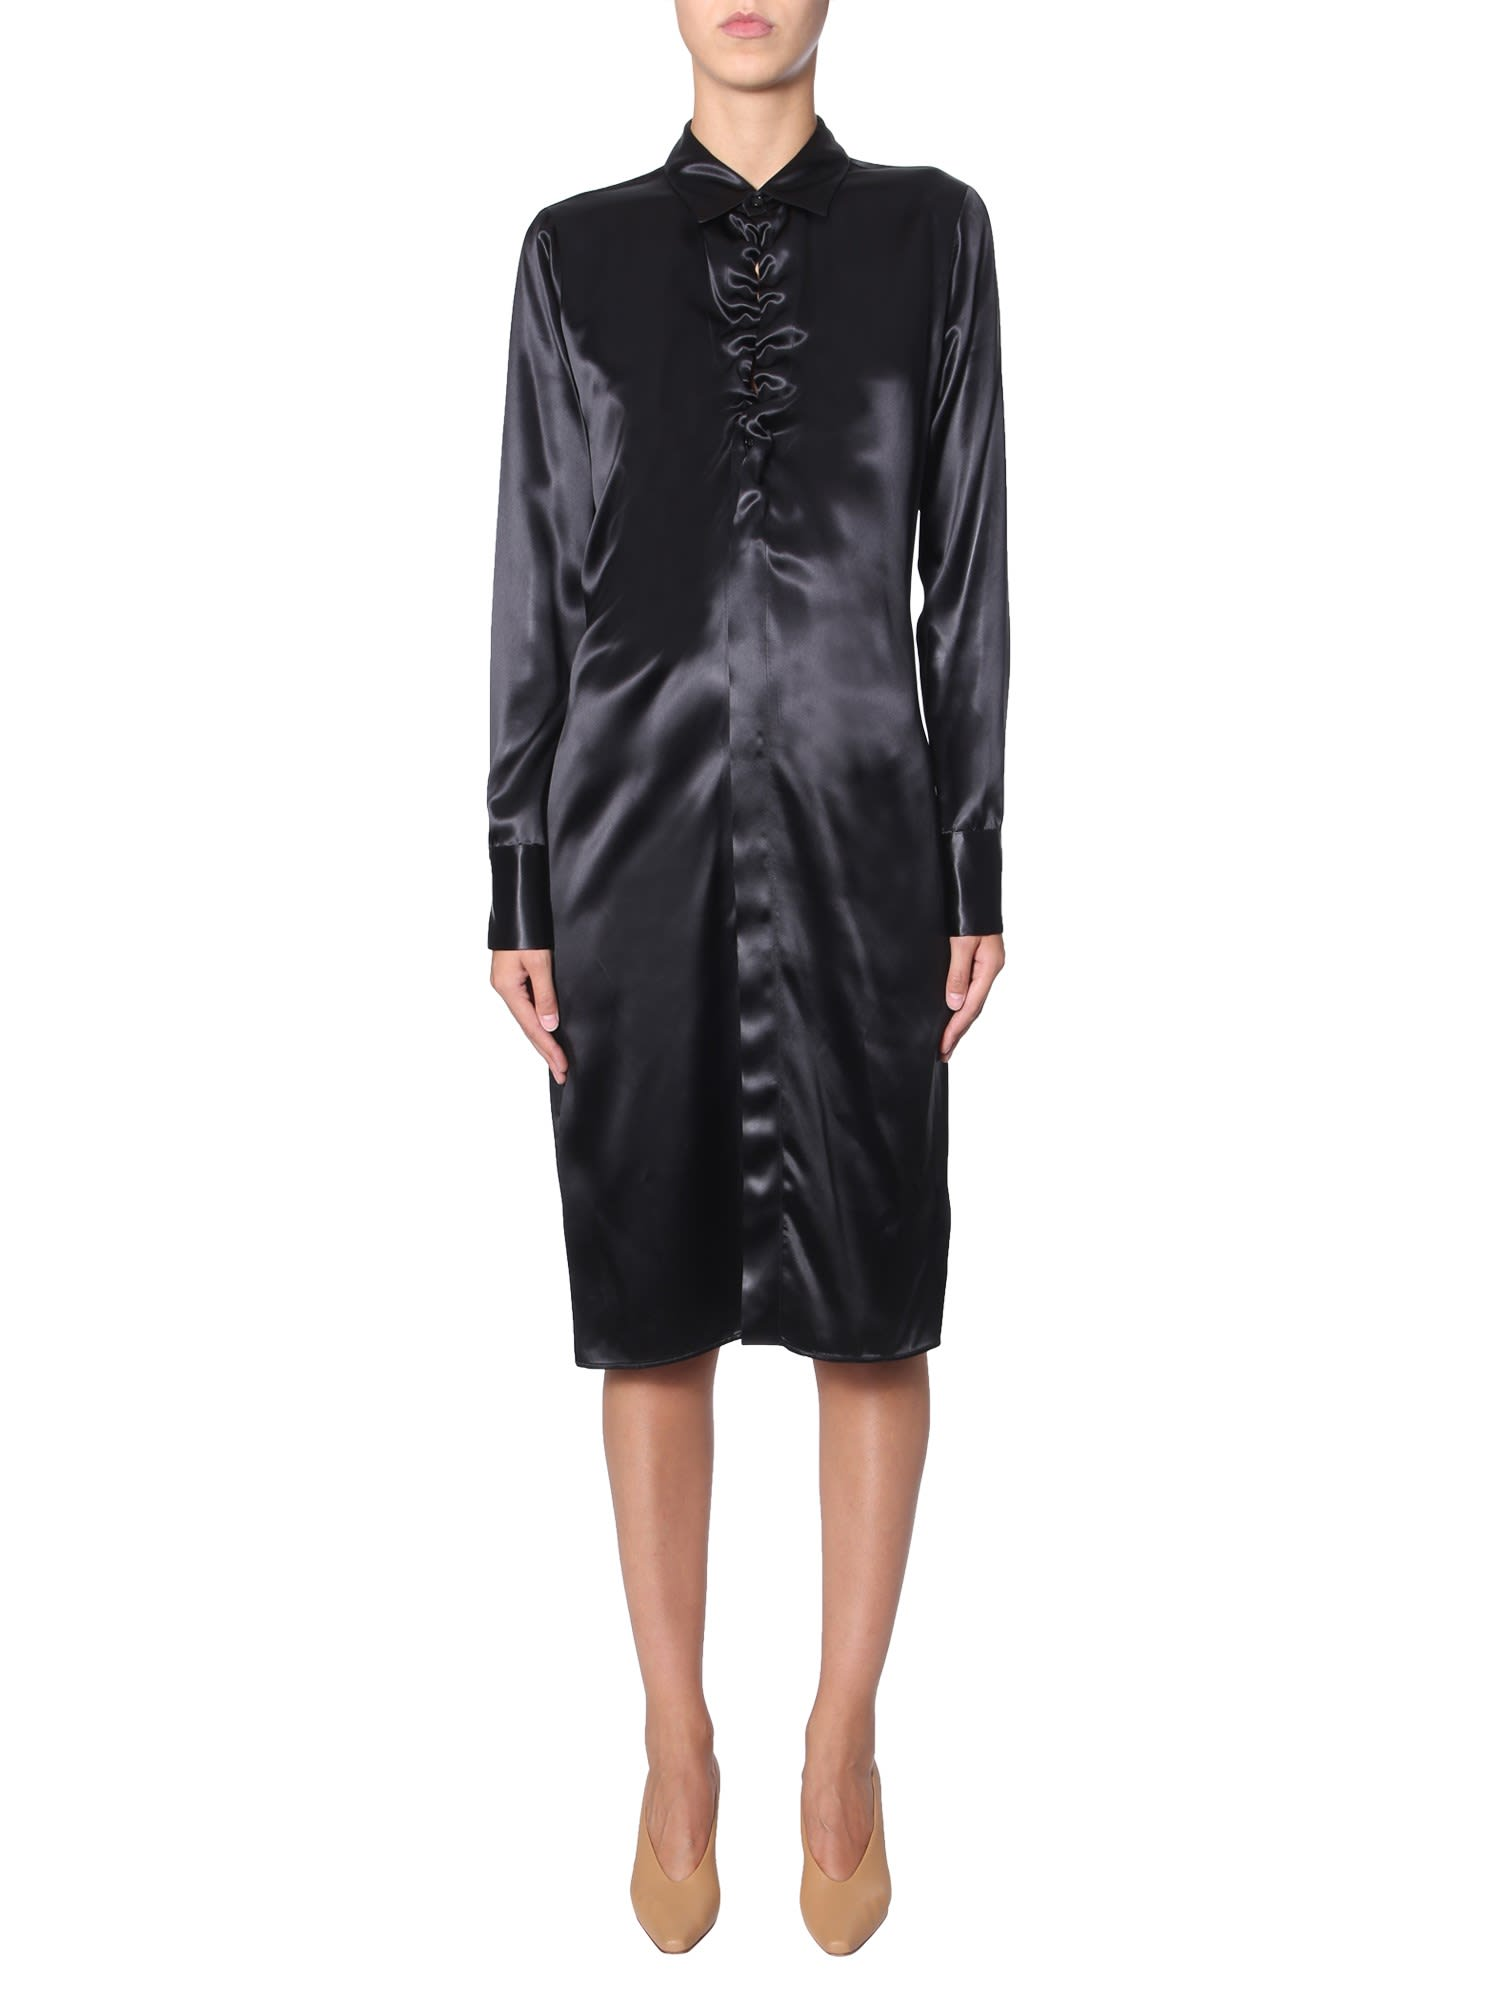 Buy Bottega Veneta Long Sleeve Dress online, shop Bottega Veneta with free shipping